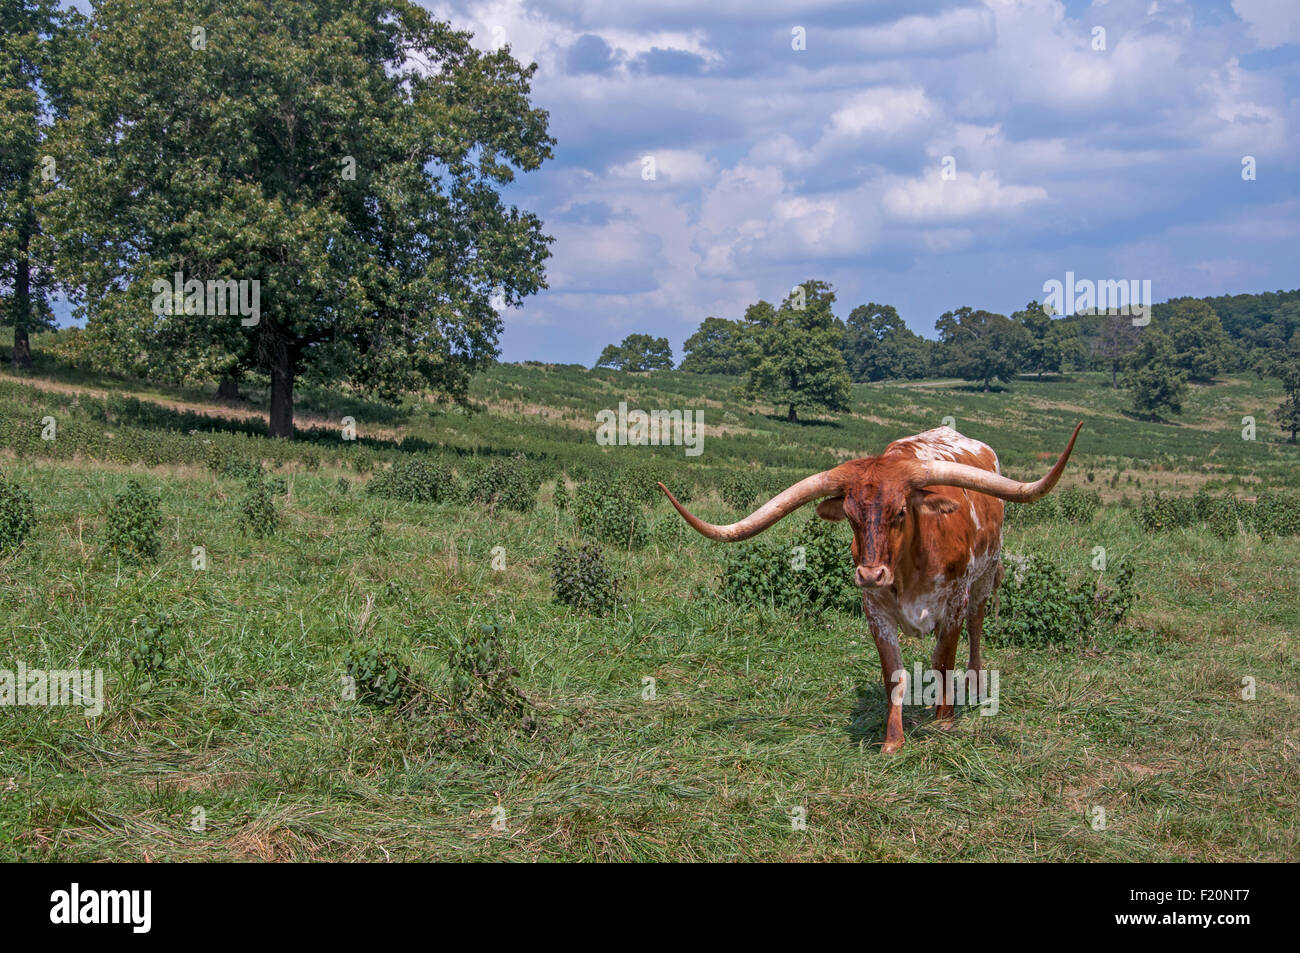 Longhorn cattle in meadow - Stock Image